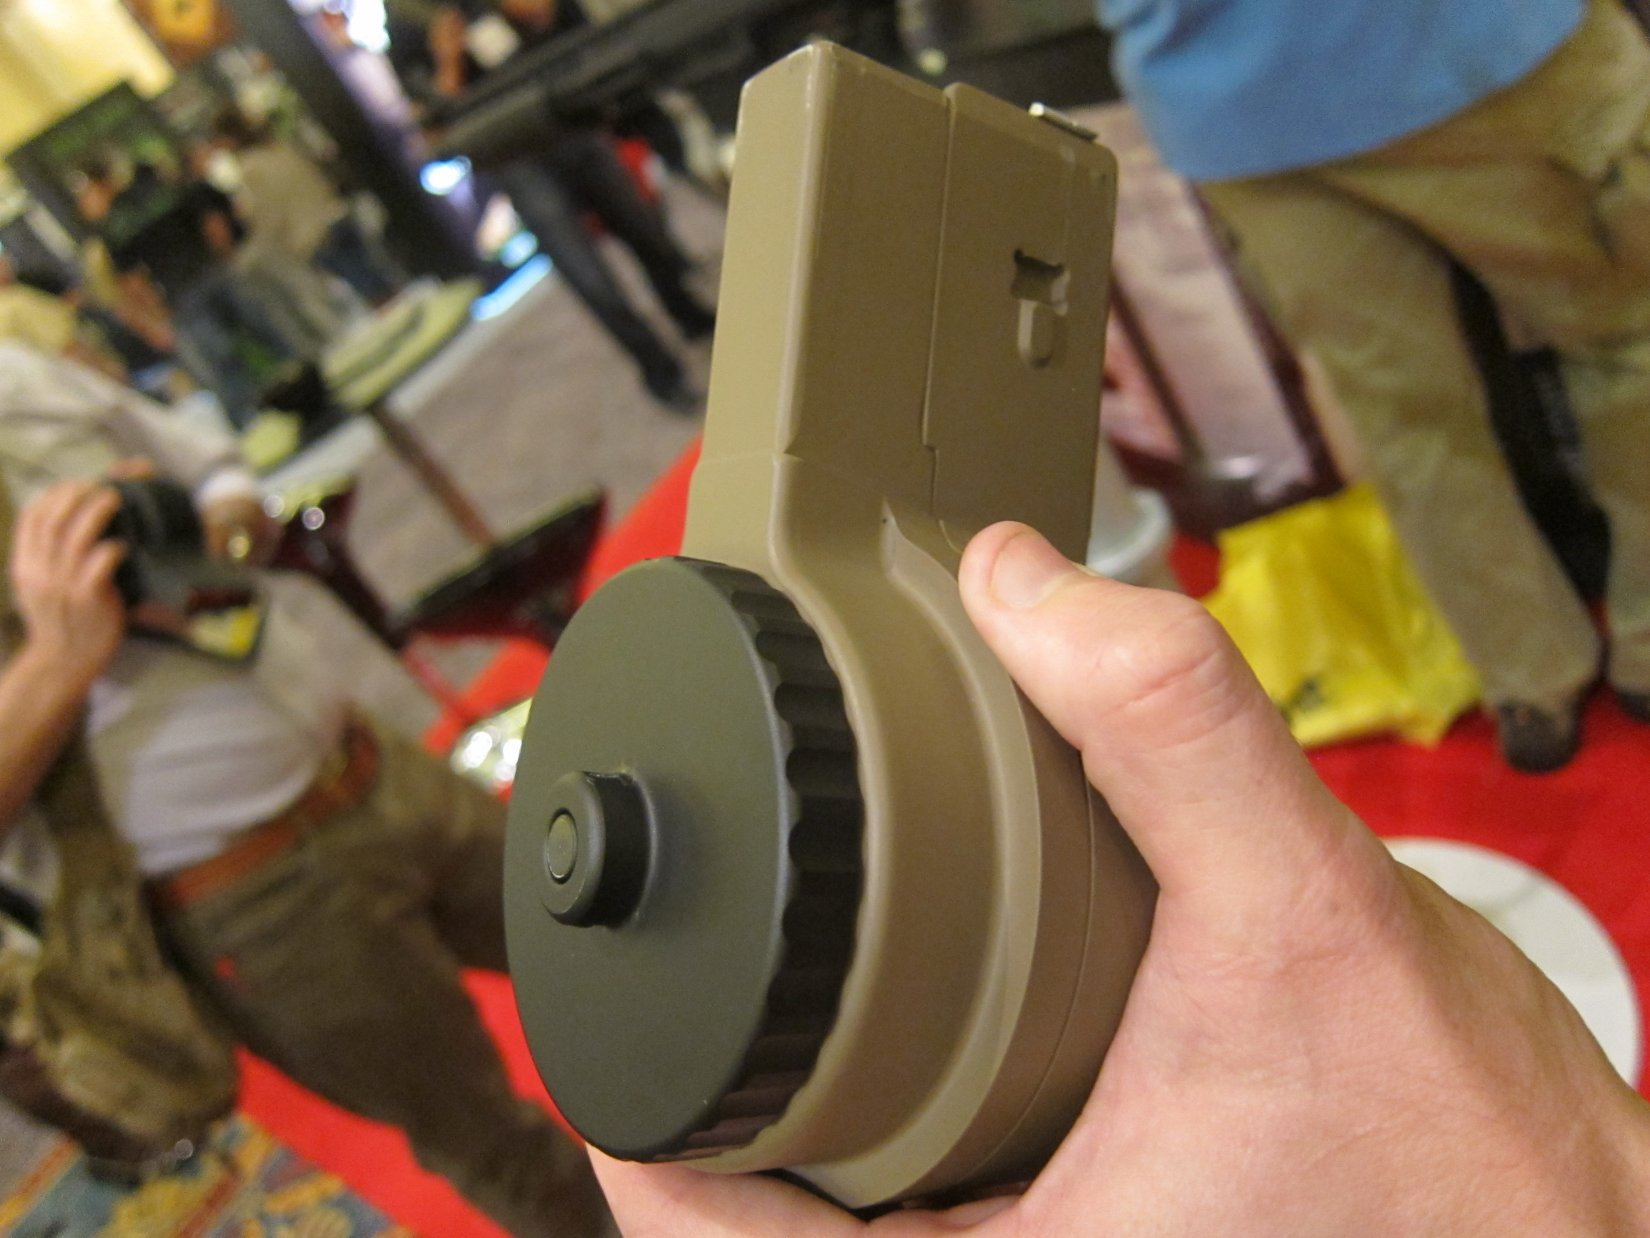 XS Products X 15 S 50 Round 5.56x45mm NATO .223 Rem. Drum Magazine SHOT Show 2012 DefenseReview.com DR 5 XS Products 50 Round Drum Magazines for 5.56x45mm NATO/.223 Rem. and 7.62x51mm NATO/.308 Win. Tactical Rifle/Carbine/SBRs!